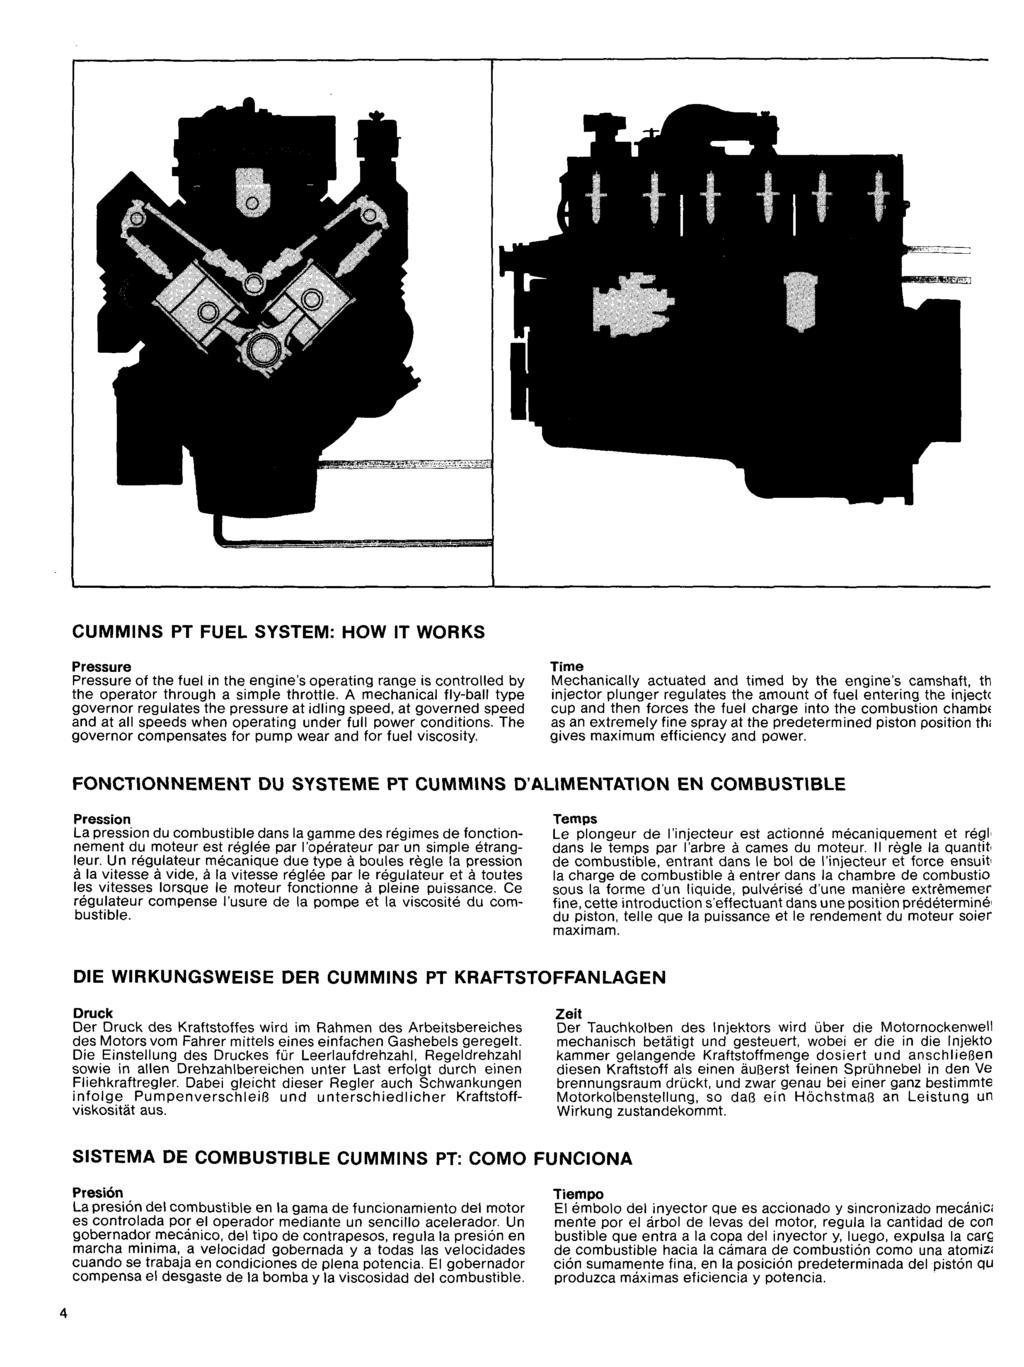 THE M '^NUFACTURE OF DIESEL ENGINES  presented ly  CuEimins